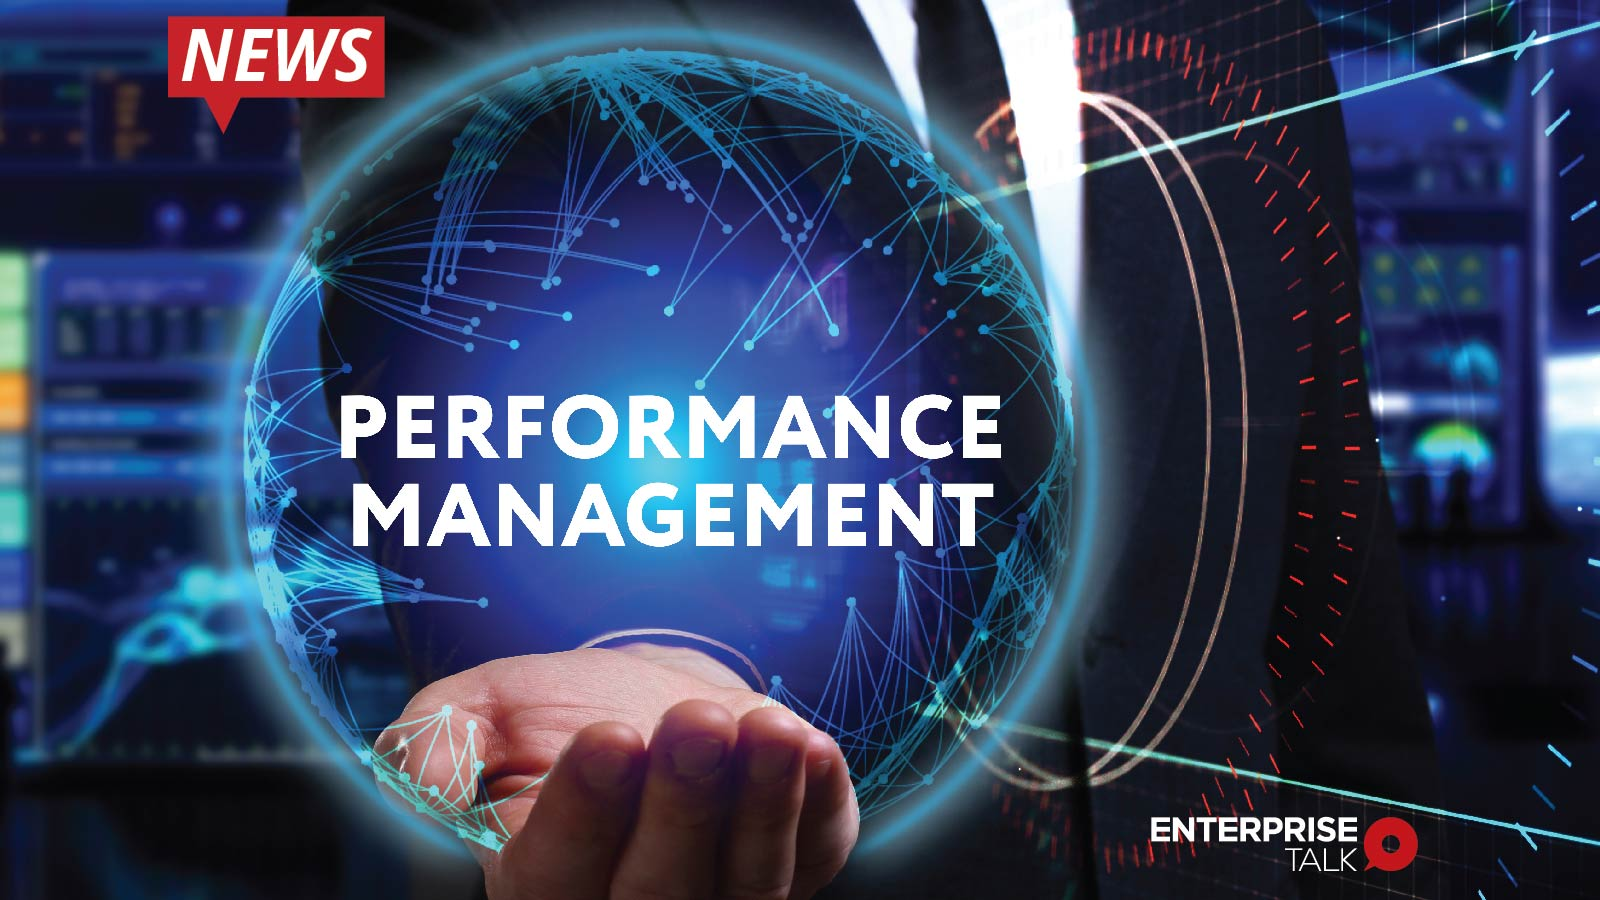 Hypershift Transforms Corporate Innovation with Platform for Innovation Performance Management